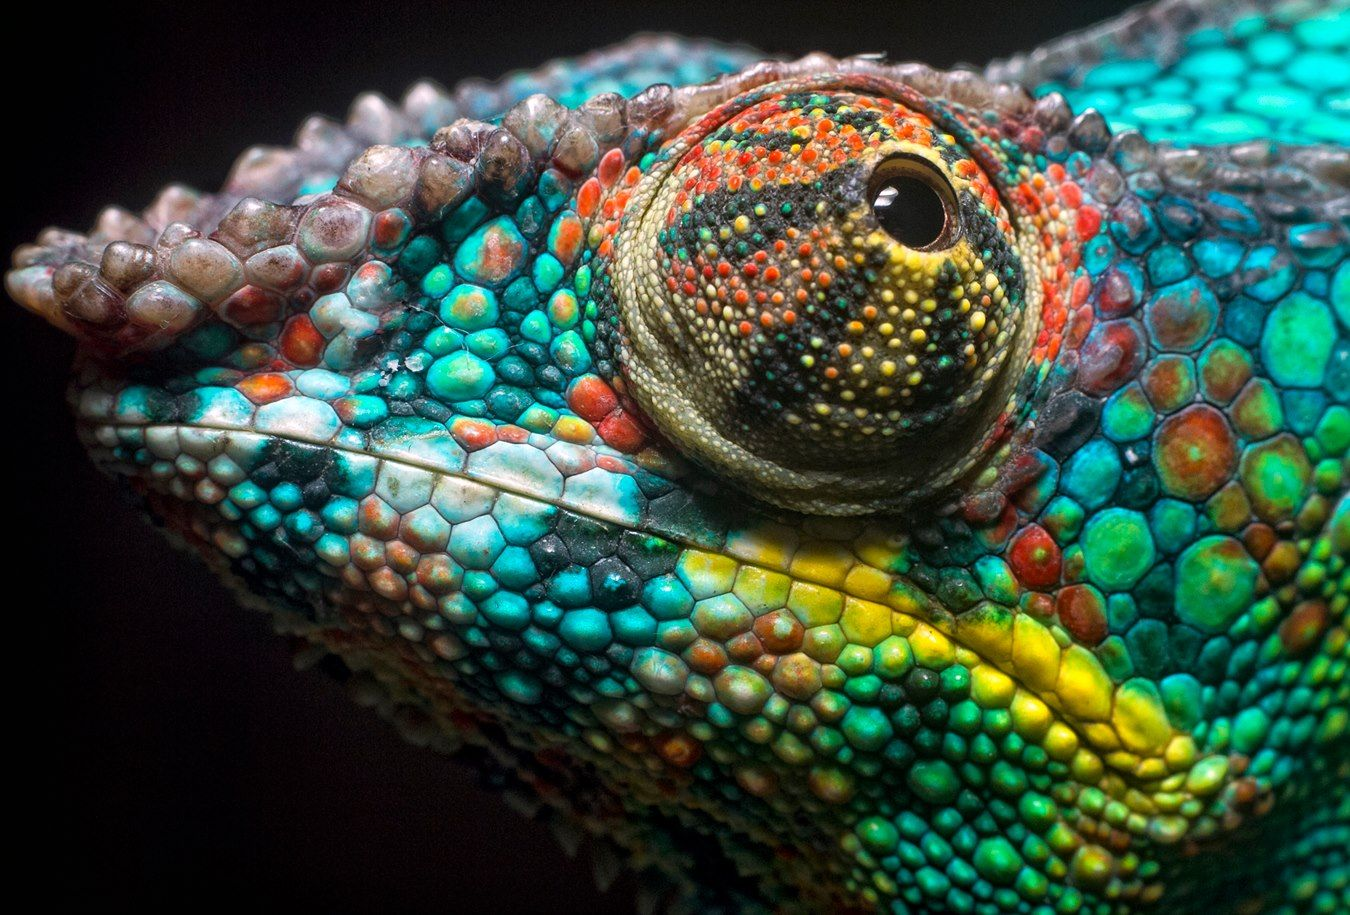 25 amazing chameleon pictures - Animals With Incredible Eyes